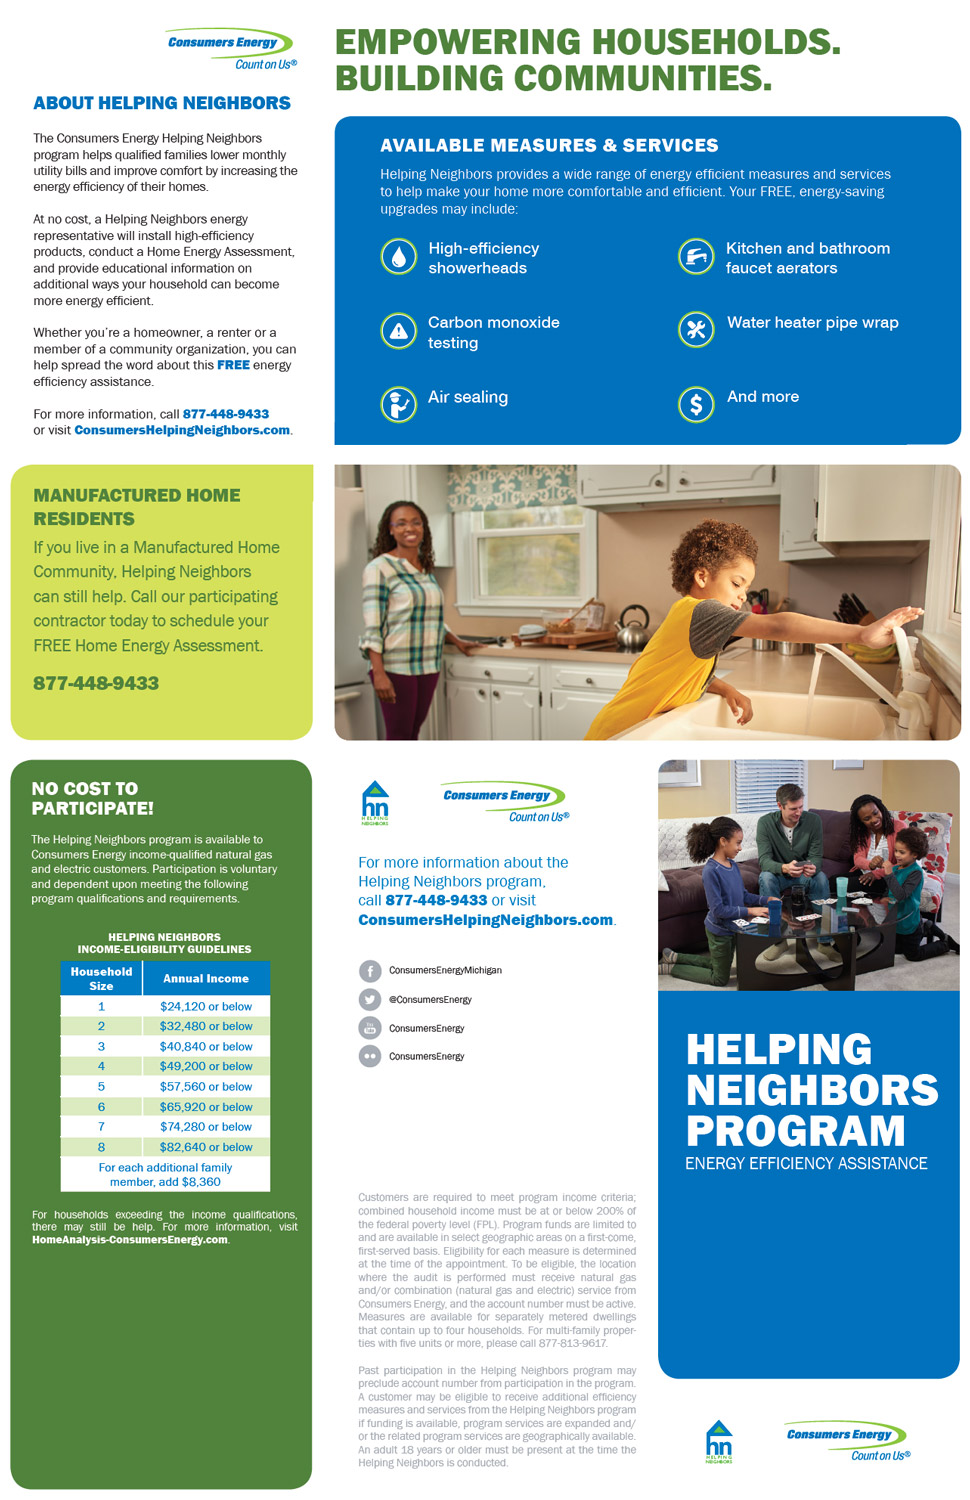 Helping Neighbors Program - Consumers Energy